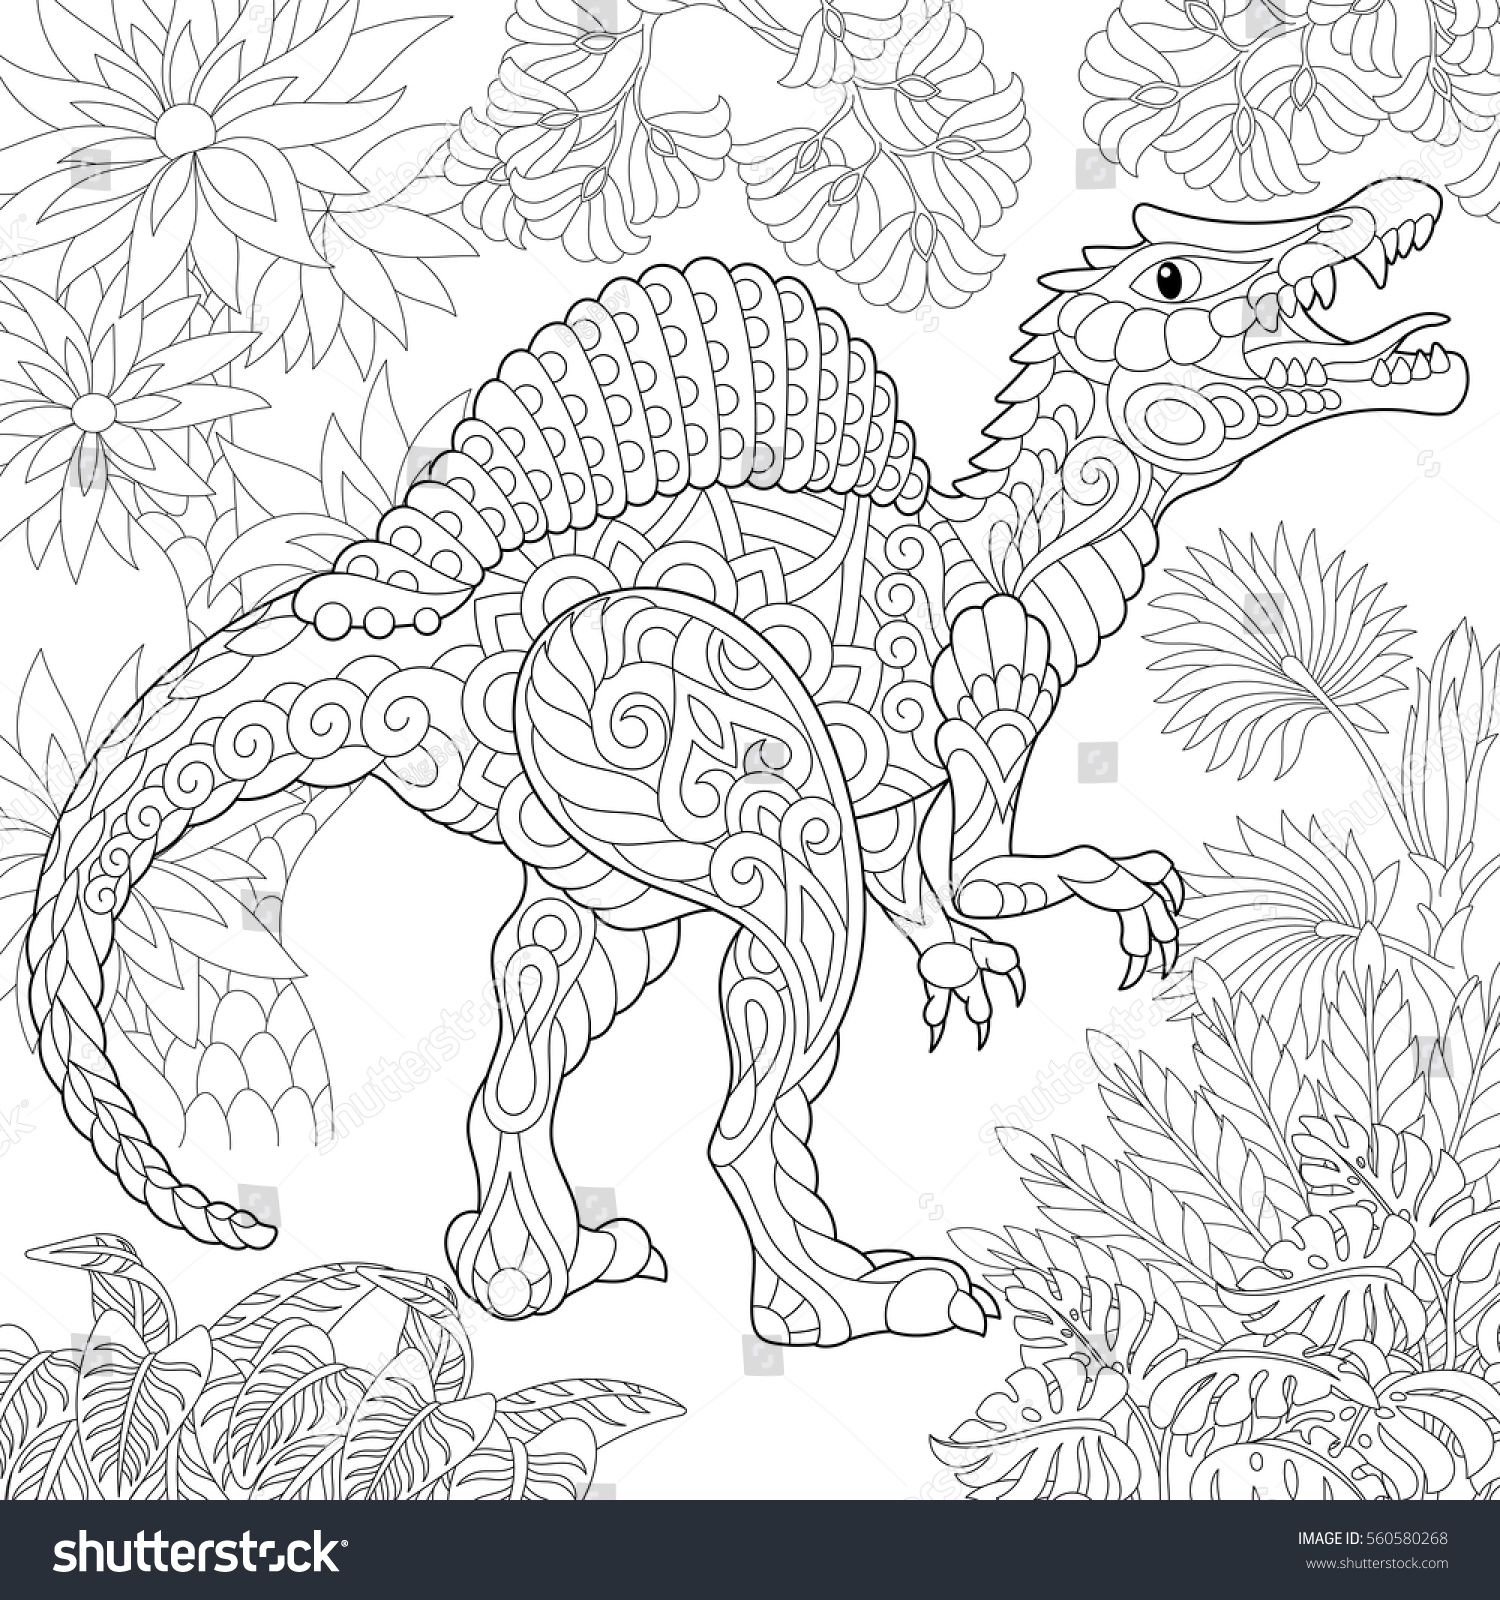 Free Printable Dinosaur Coloring Pages For Kids Dinosaur Coloring Pages Dinosaur Coloring Sheets Animal Coloring Pages